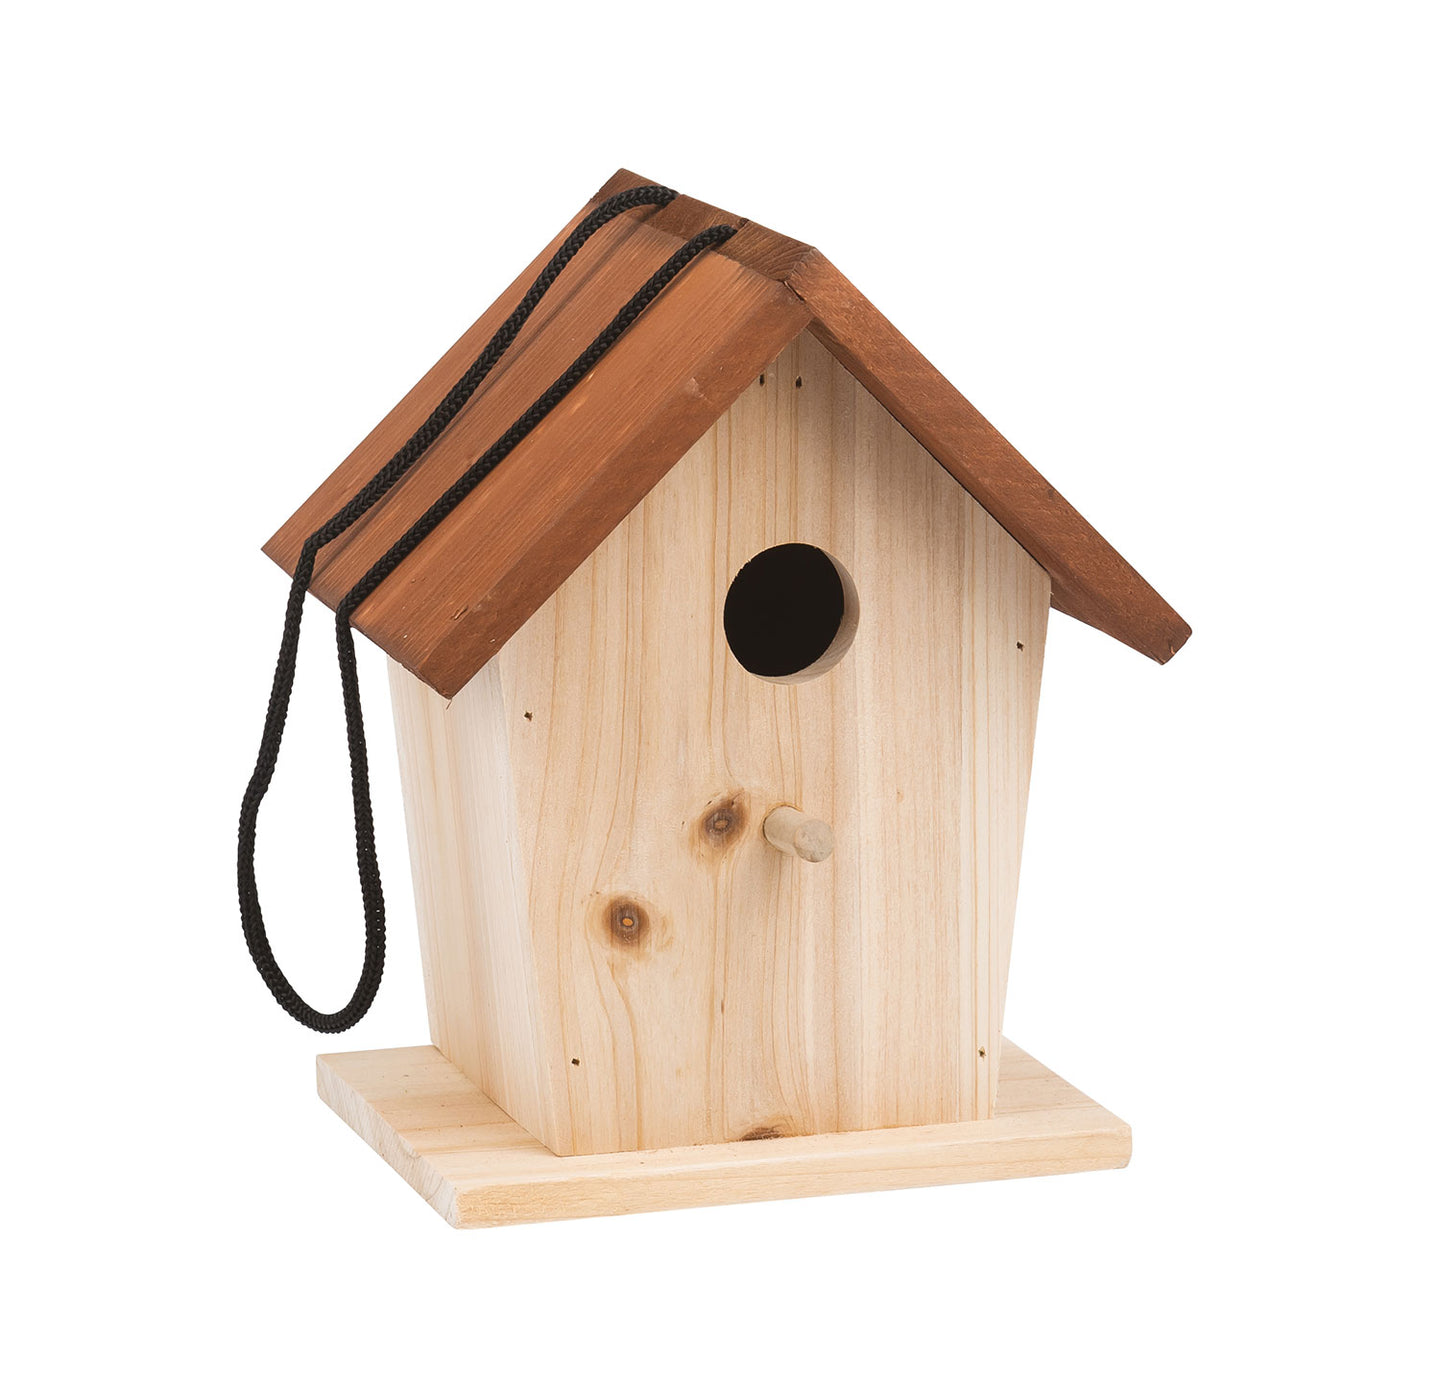 Made from fir wood and presented in an attractive box decorated in the style of naturalist's illustrations, this little wooden house is to be placed up high for the birds to use. It will provide a refuge in times of the bad weather and somewhere safe away from their predators.